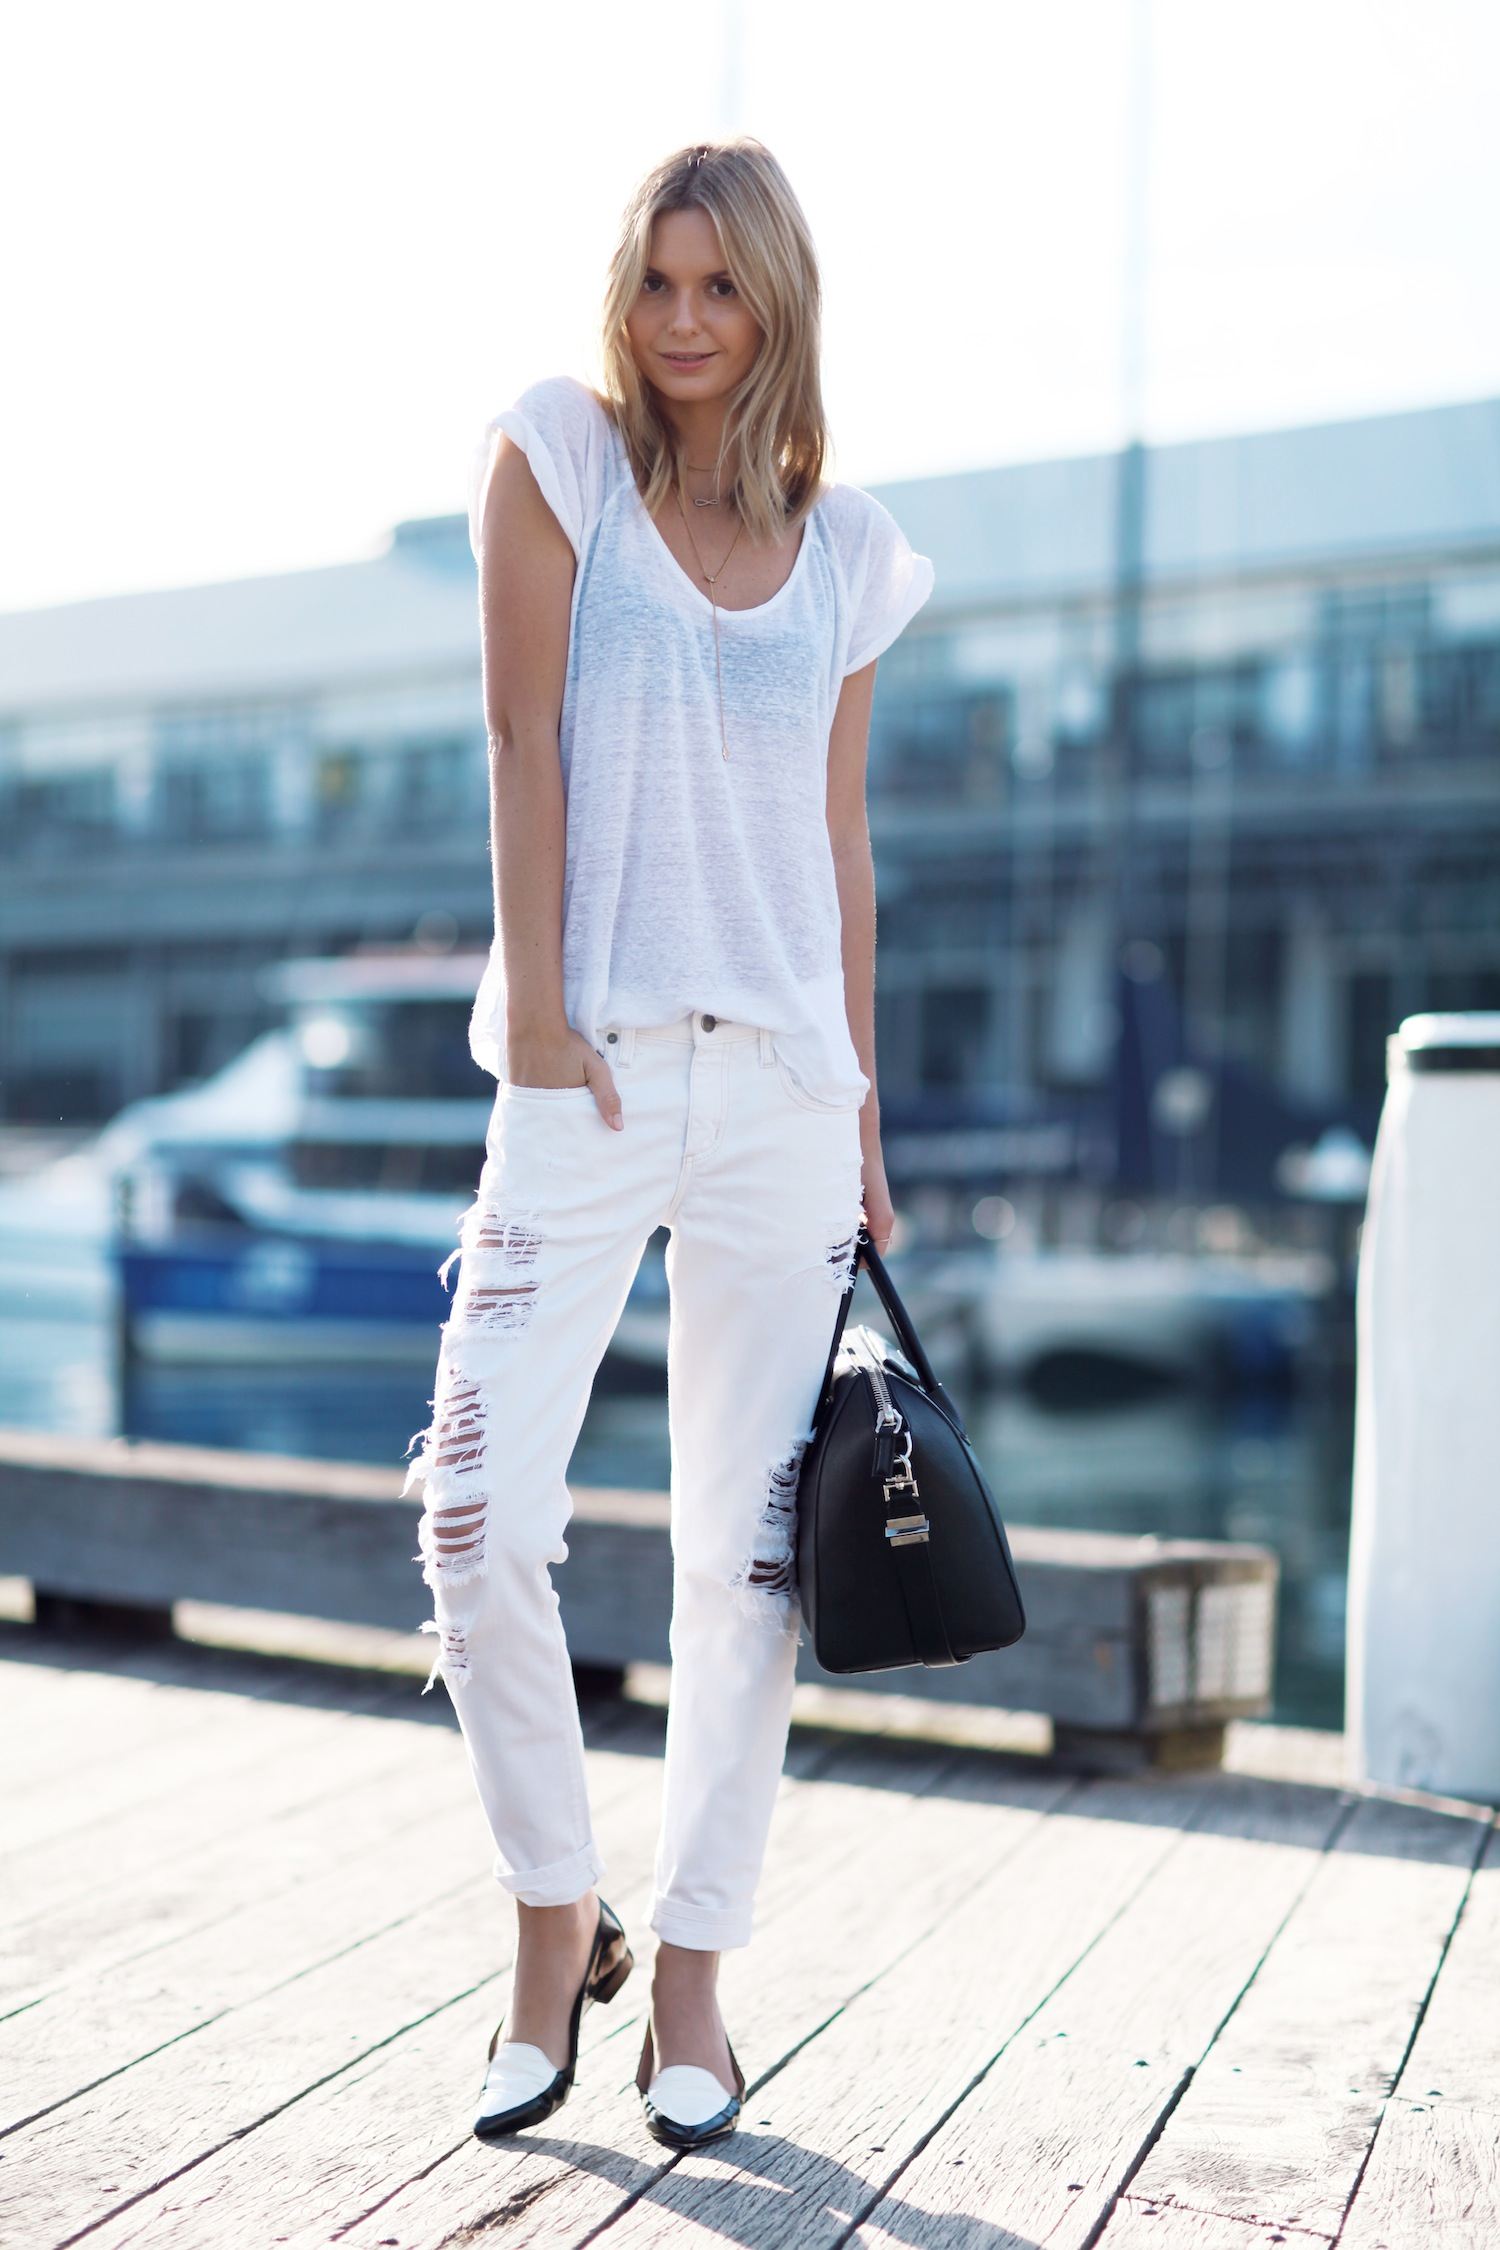 All white looks are a must-have for your summer wardrobe. Jessica Stein is a vision in white, wearing a pair of distressed jeans with a plain tee and a pair of gorgeous monochrome loafers. T-Shirt: Zara, Jeans: Nobody, Loafers: Fabio Rusconi, Bag: Givenchy.